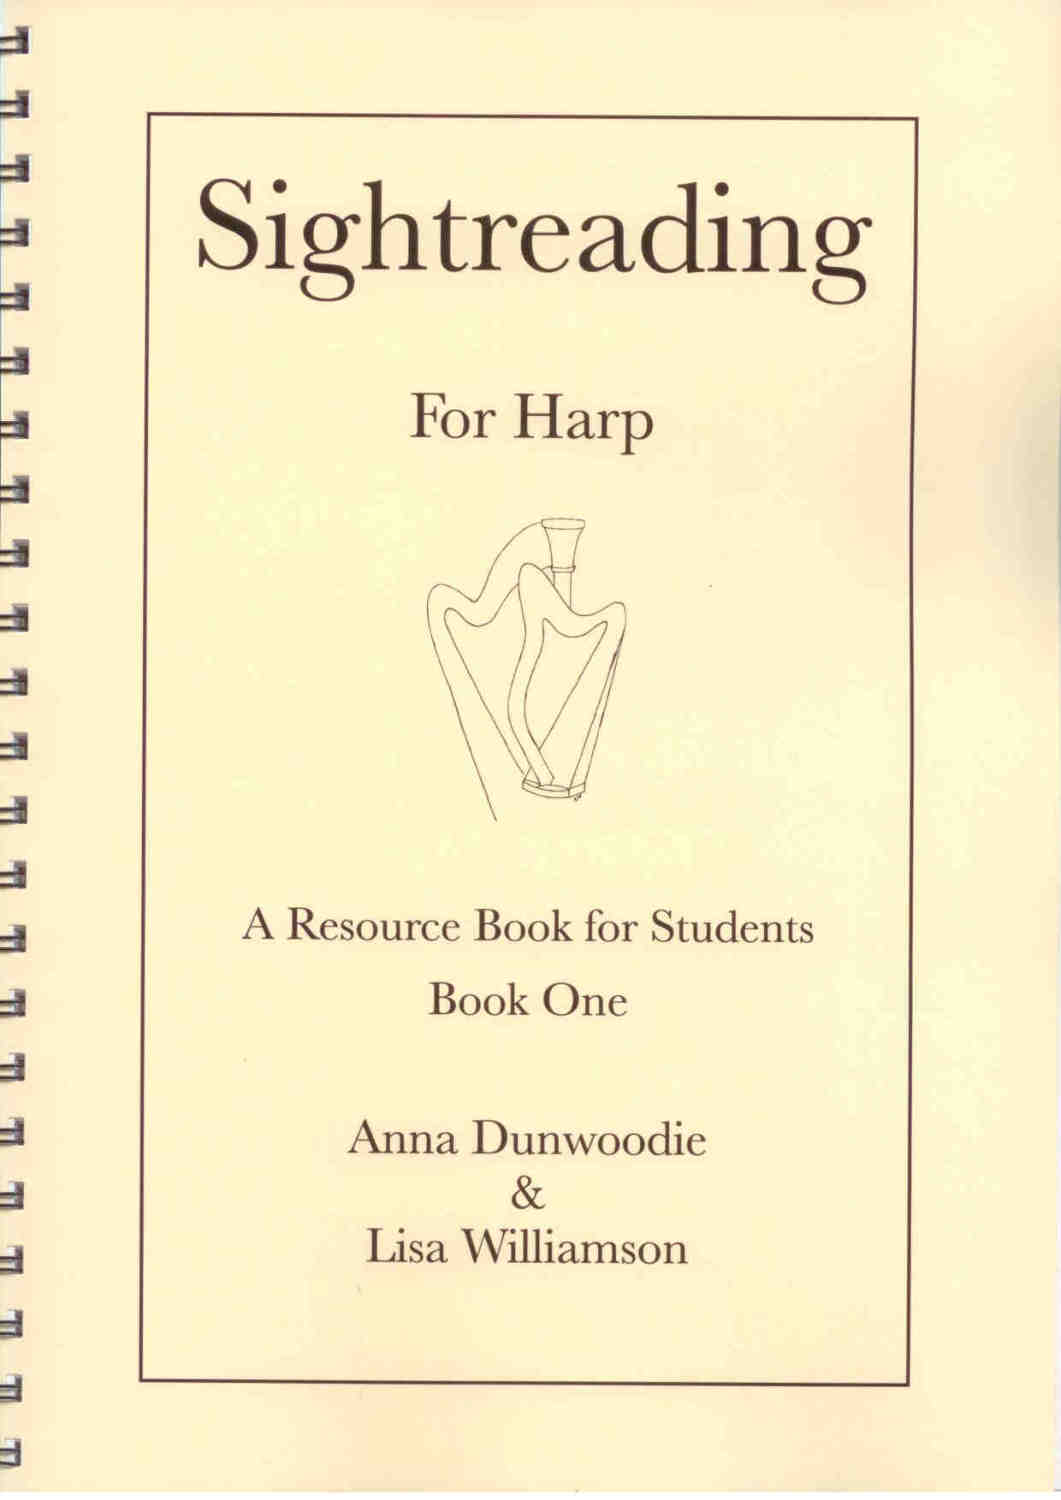 Sightreading for Harp: Book 1 - A. Dunwmoodie, L. Williamson